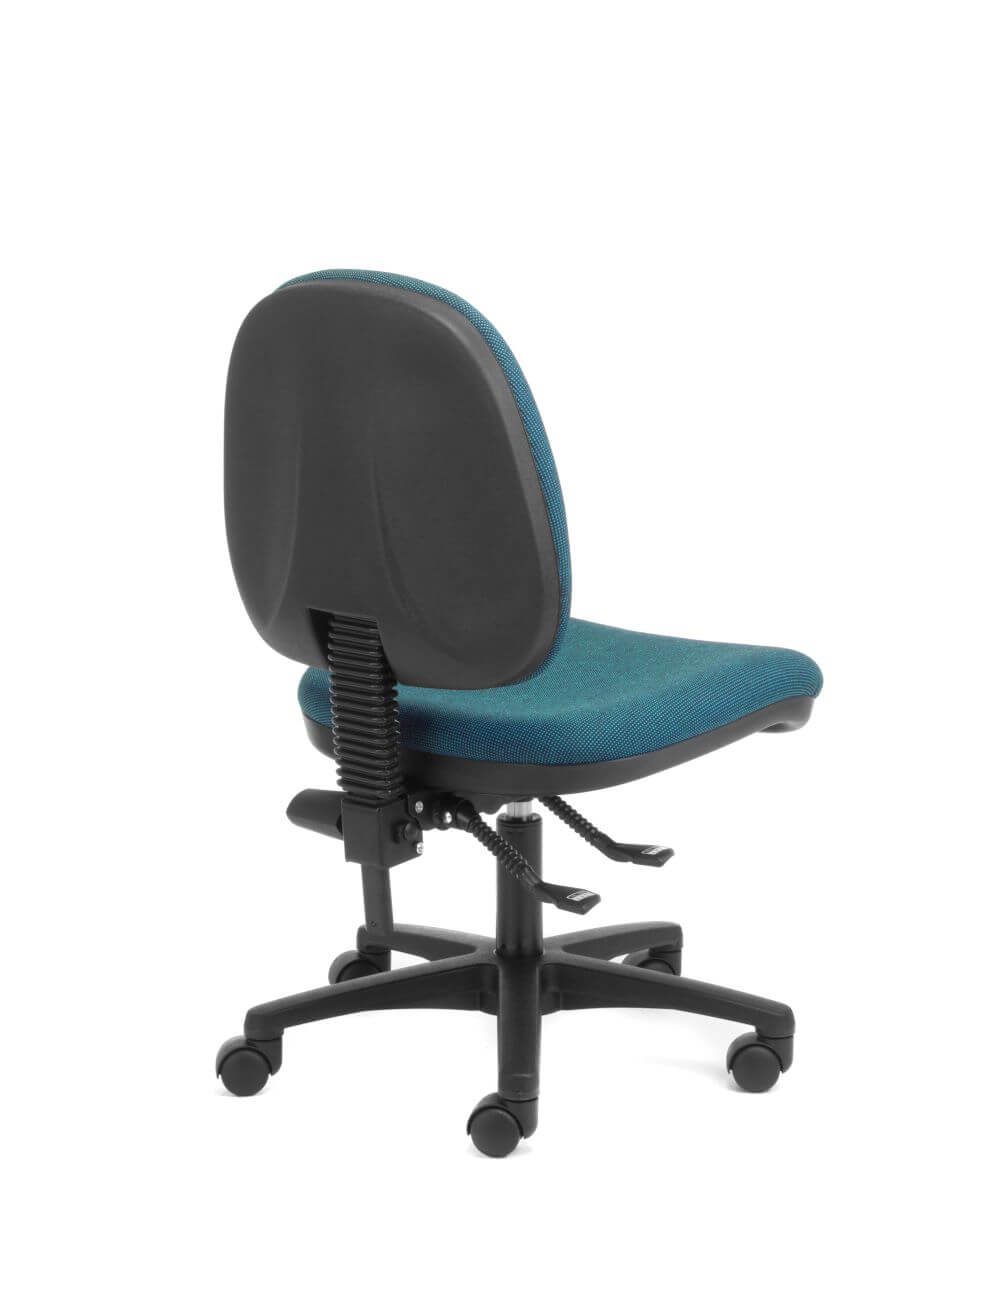 Alpha Logic mid back with black frame, 5 star base and blue upholstery, back view